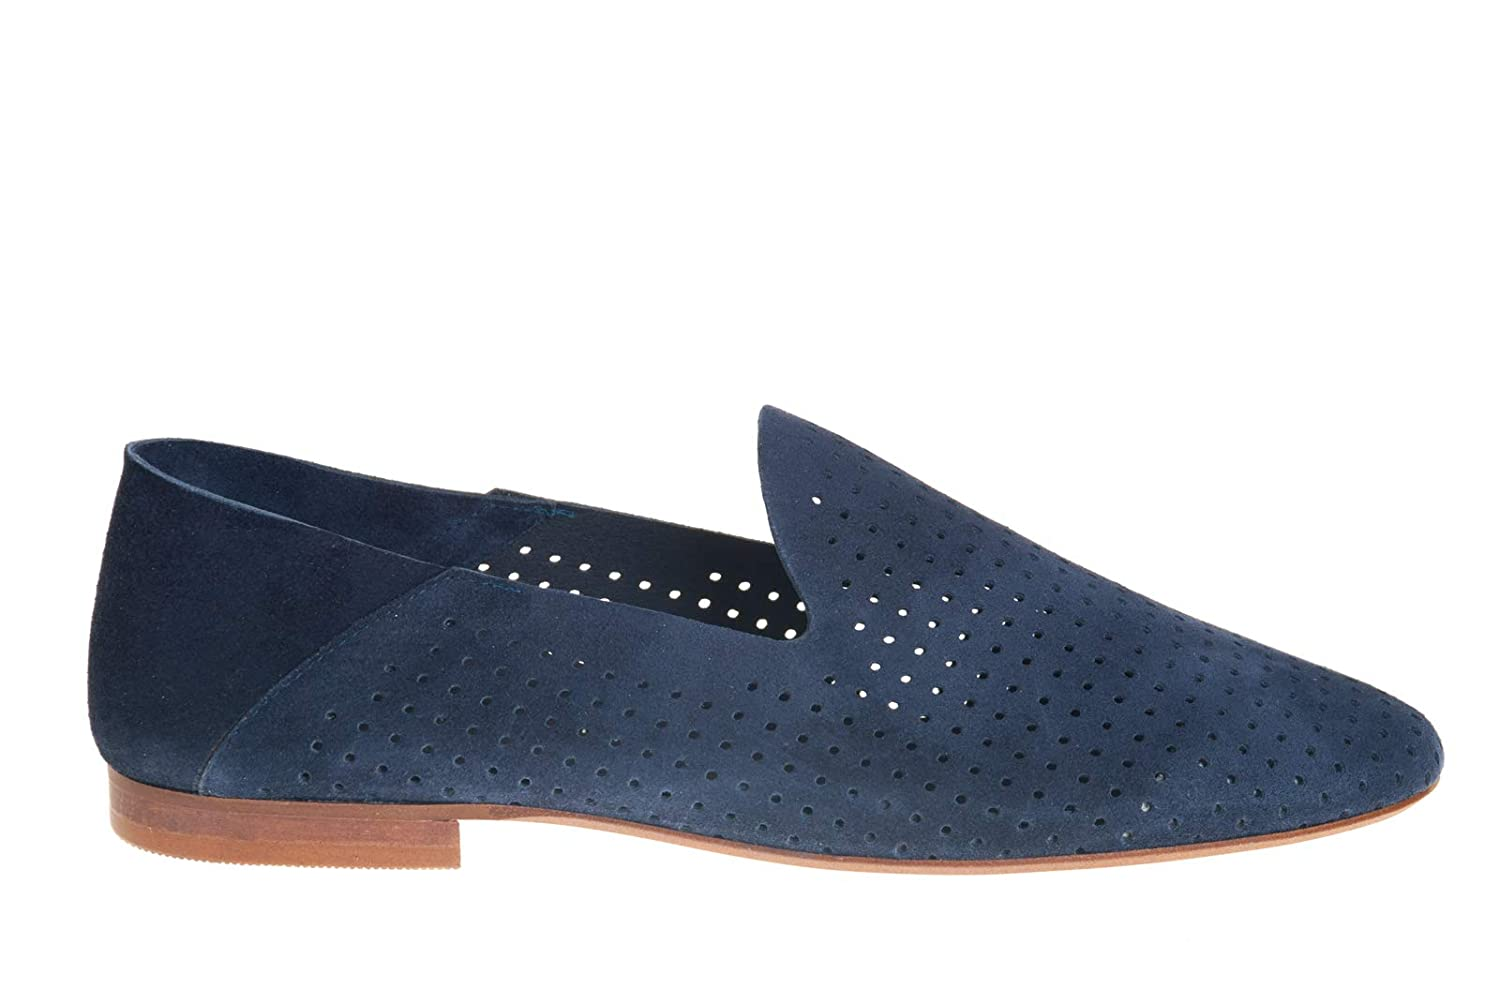 PEDRO PEDRO PEDRO MIRALLES chaussures Mocassino femmes 13102 Baby Suede Marino a6a